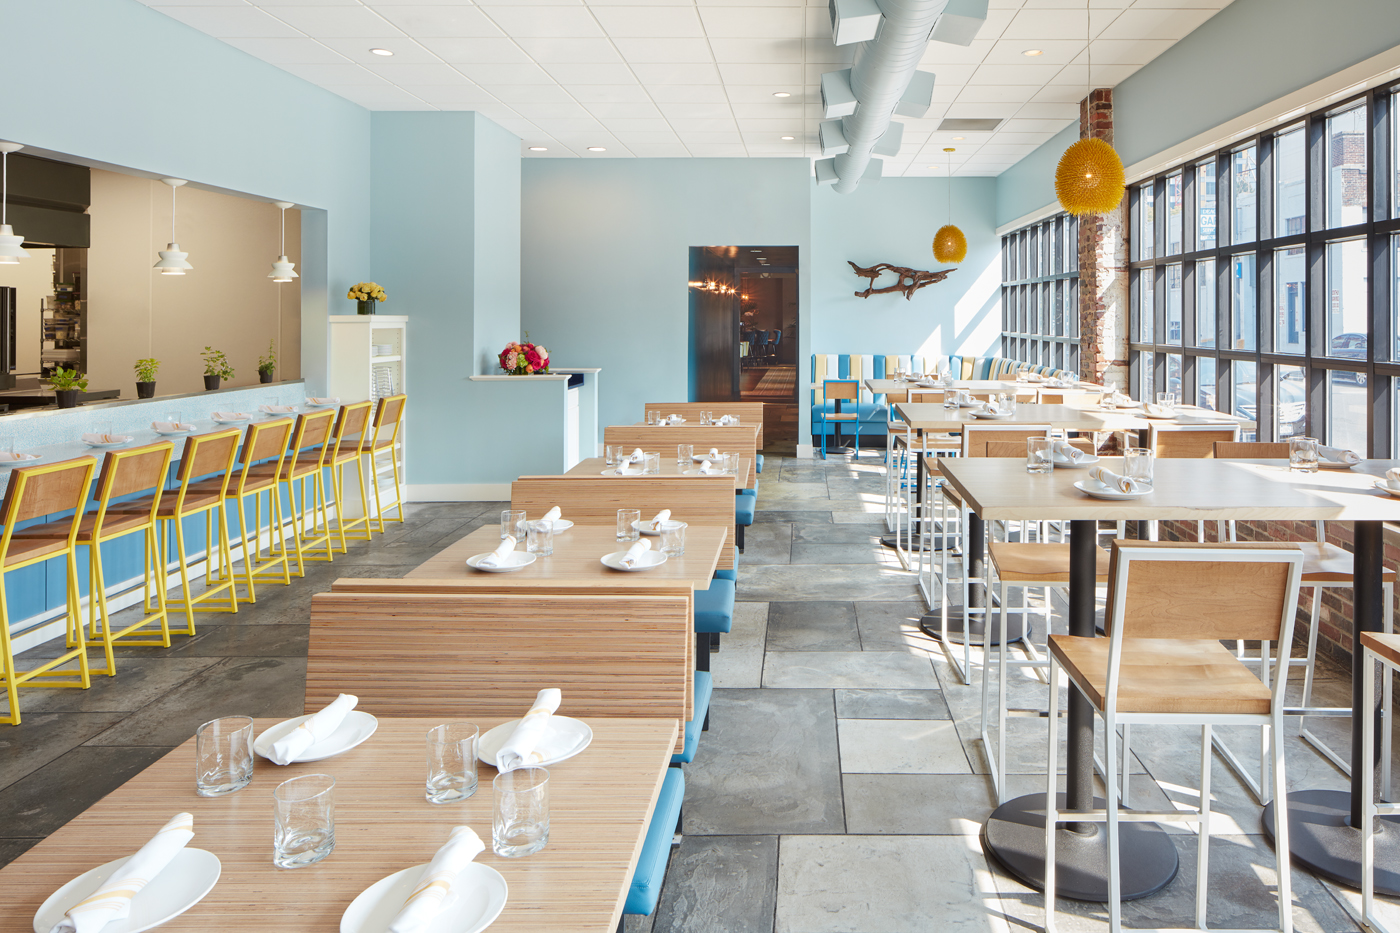 A bright restaurant space features light blue walls, wooden tables, and chairs with white metal bases